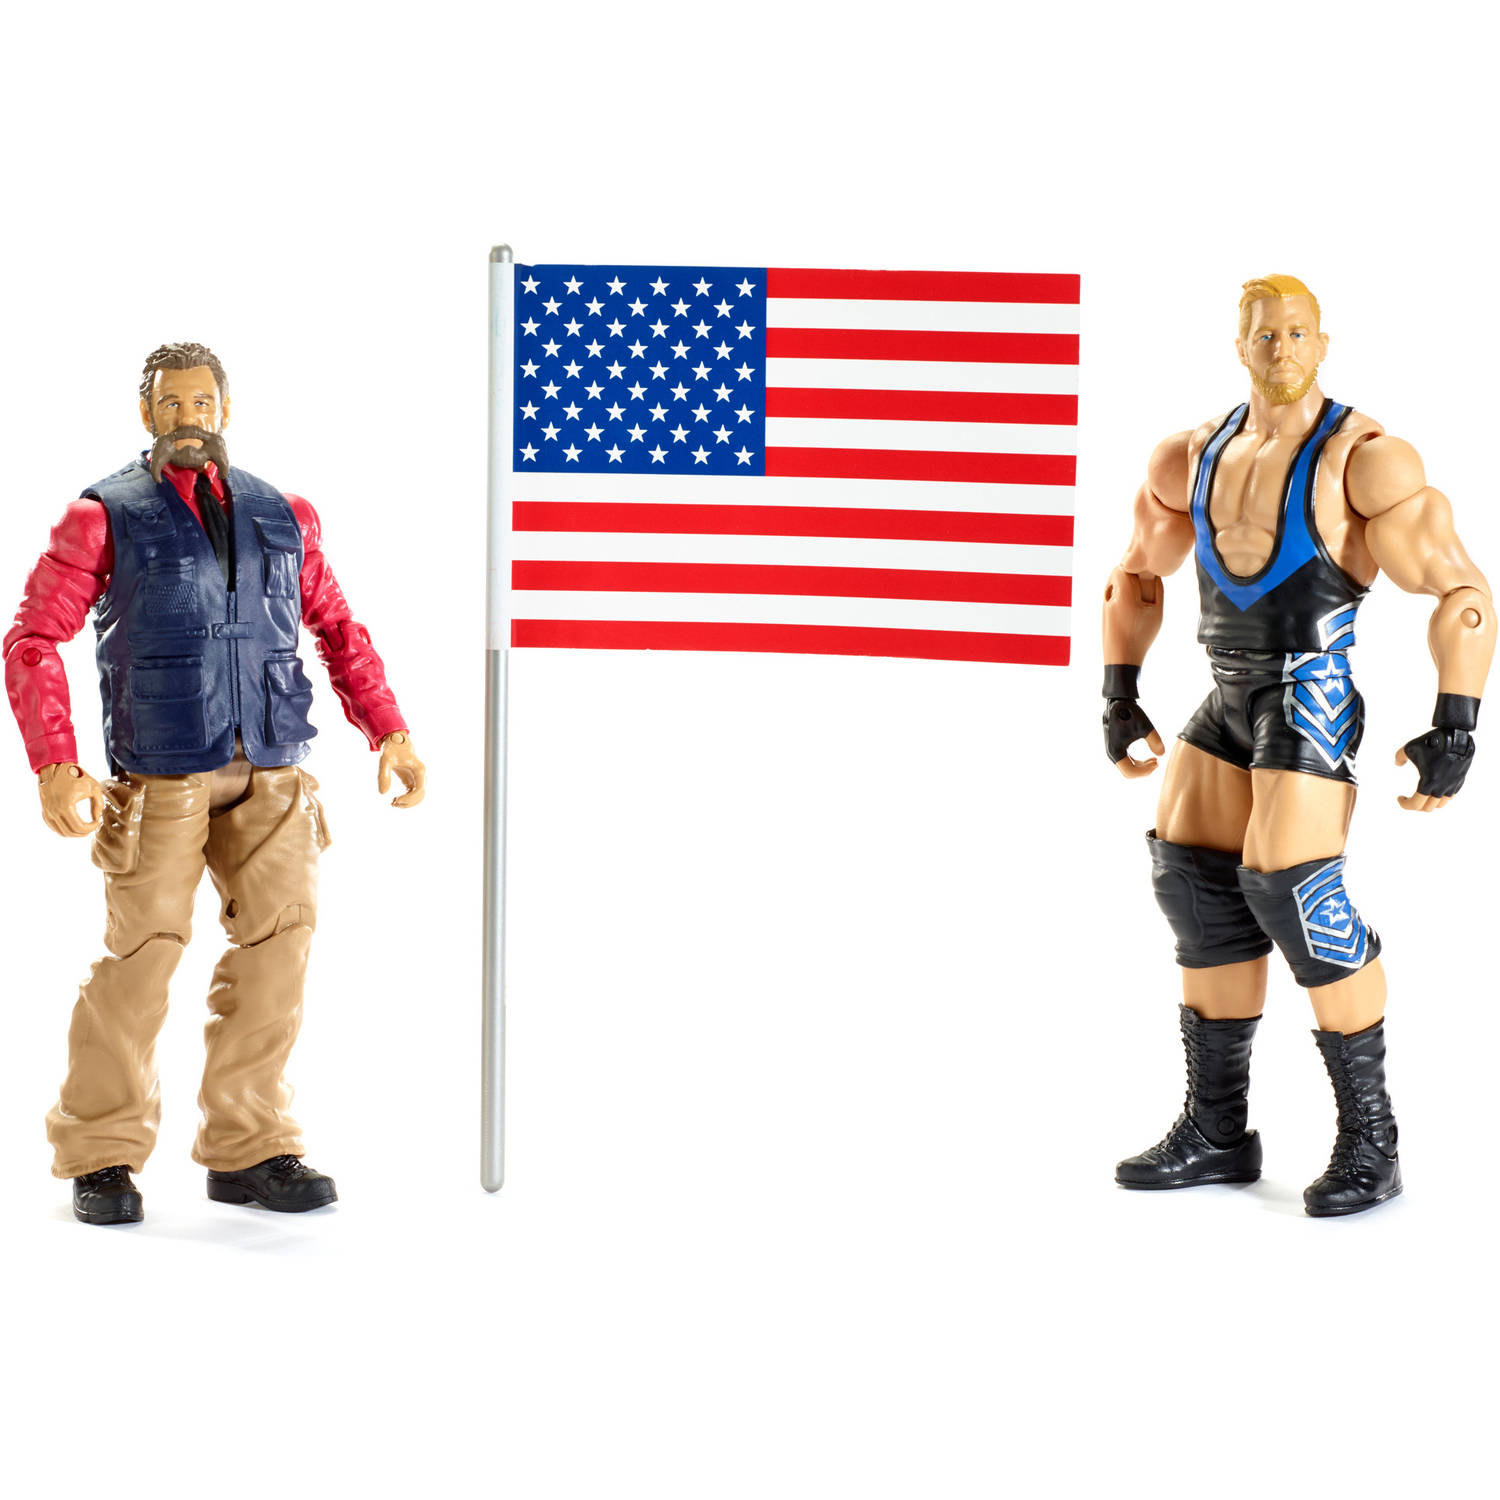 WWE Jack Swagger and Zeb Colter Action Figures, 2 Pack